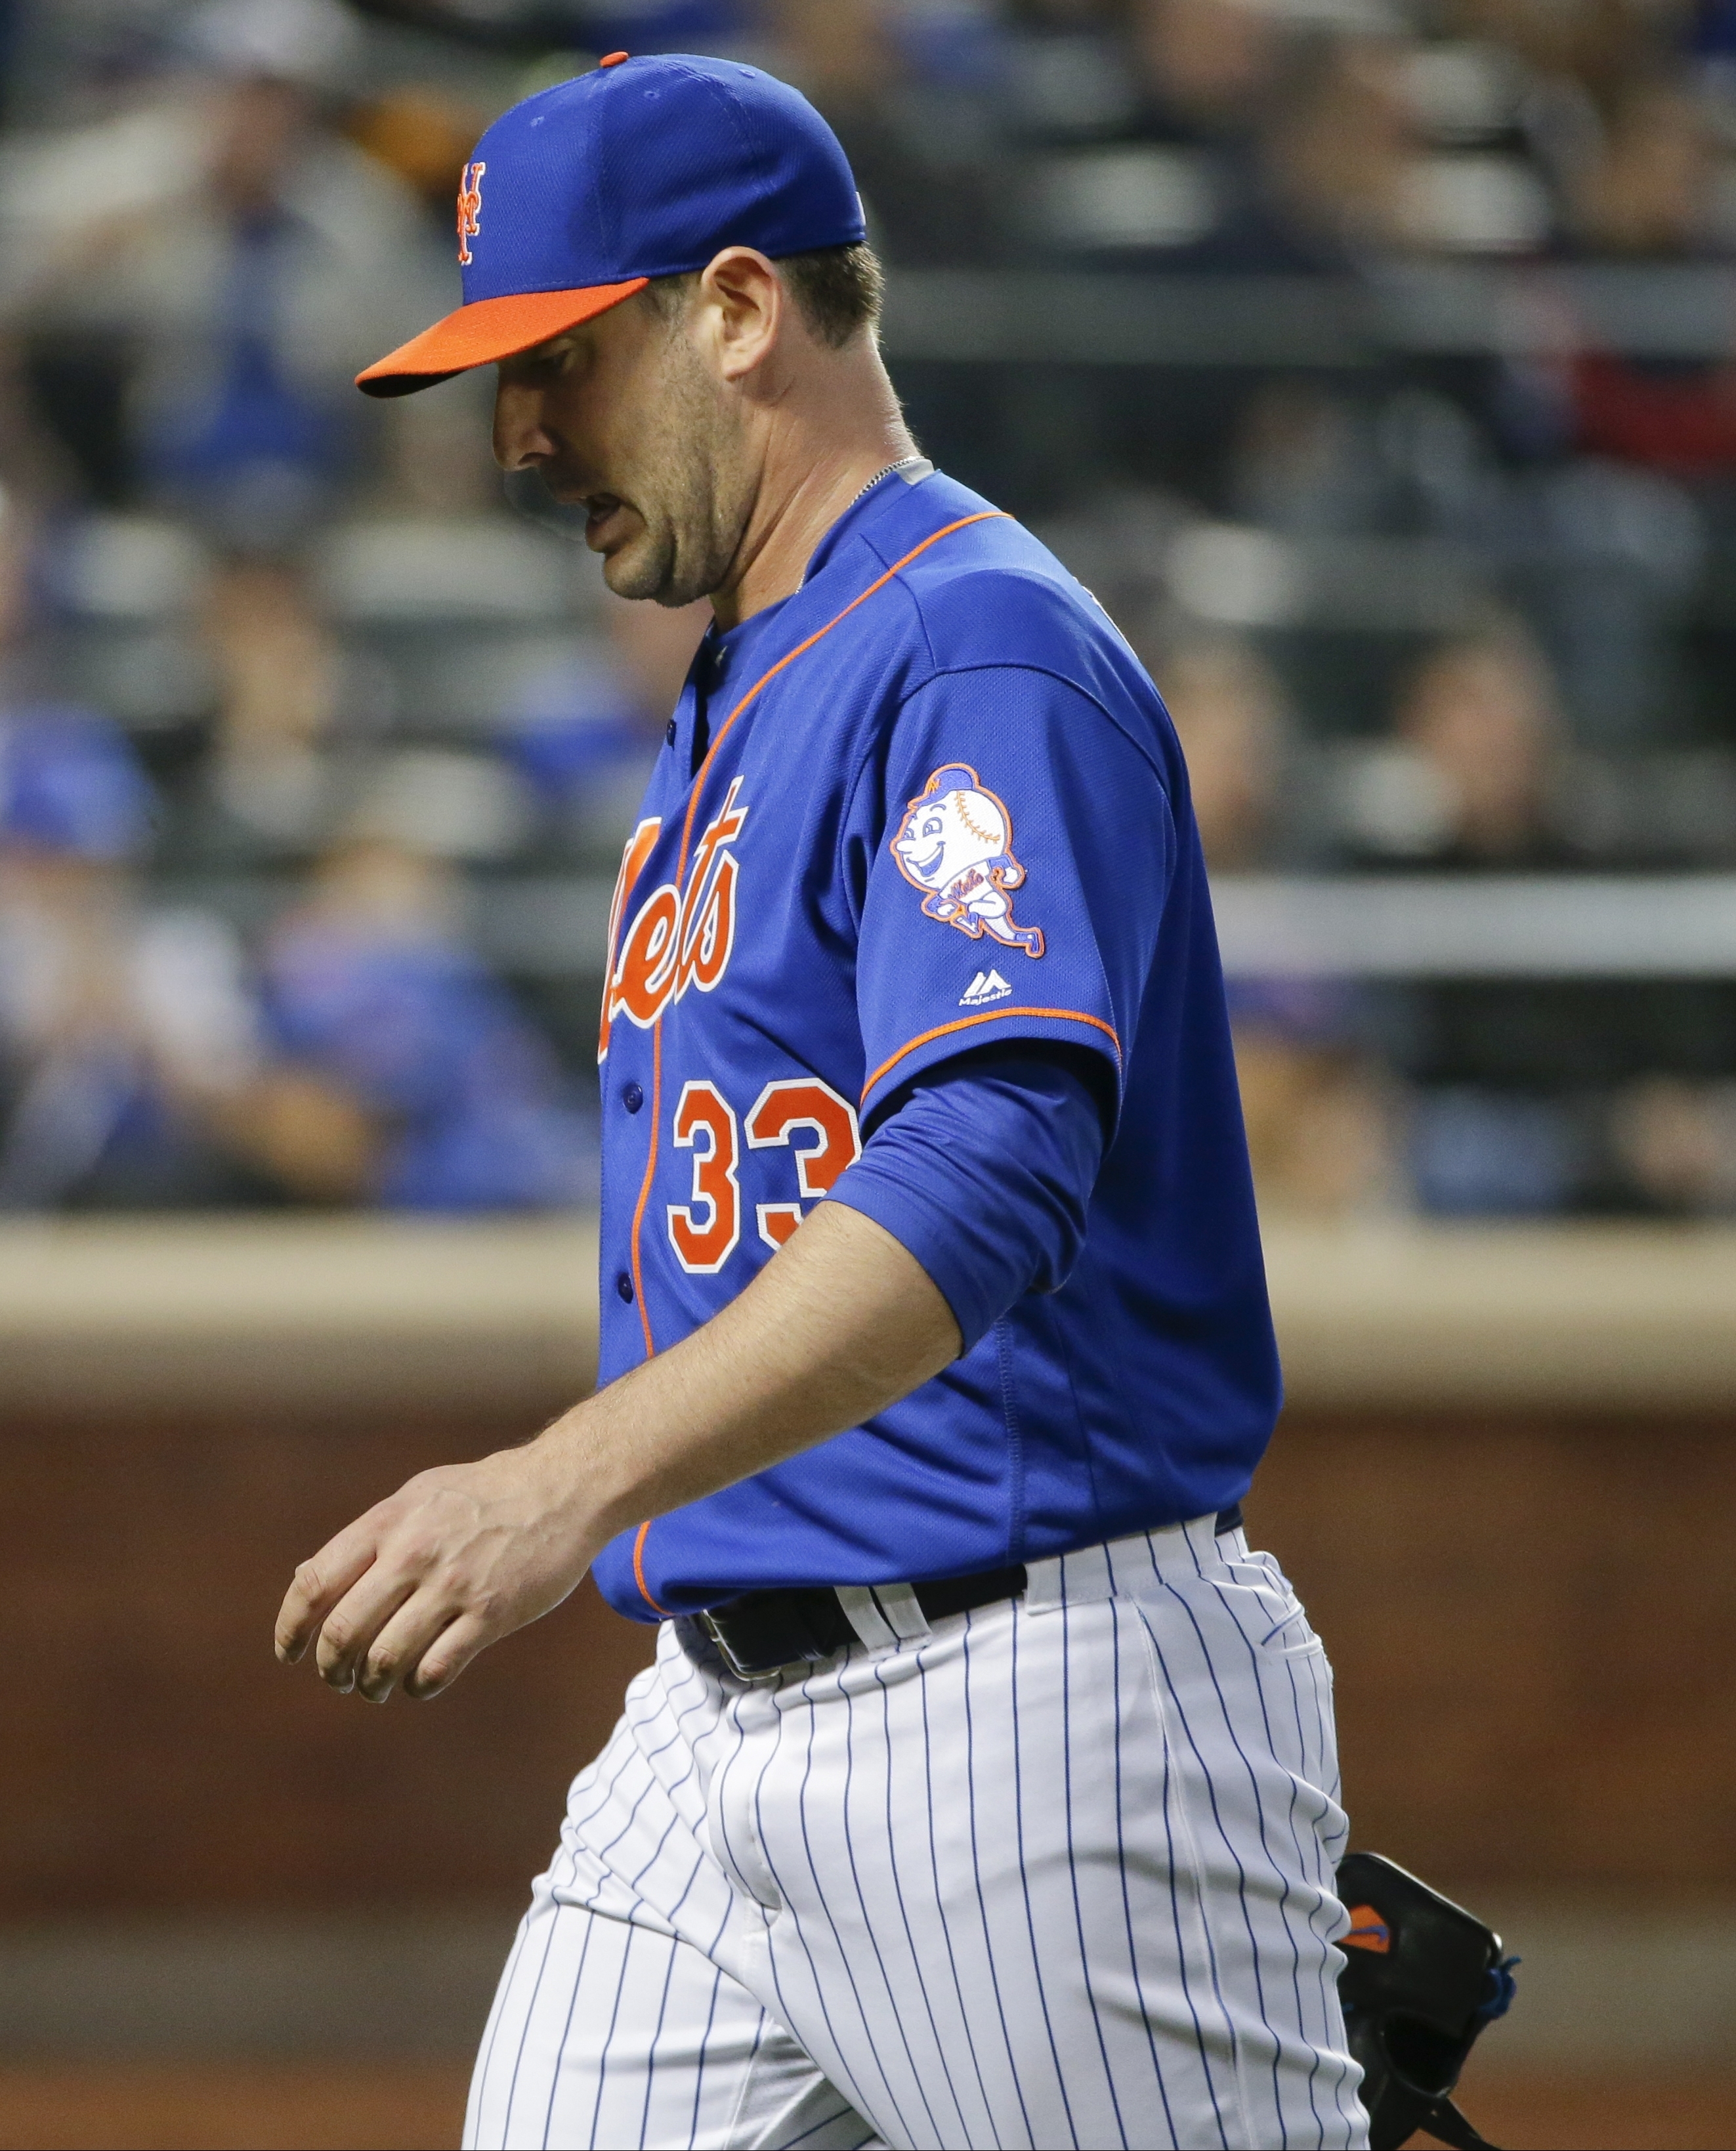 New York Mets' Matt Harvey (33) leaves the field during the third inning of a baseball game against the Washington Nationals, Thursday, May 19, 2016, in New York. (AP Photo/Frank Franklin II)